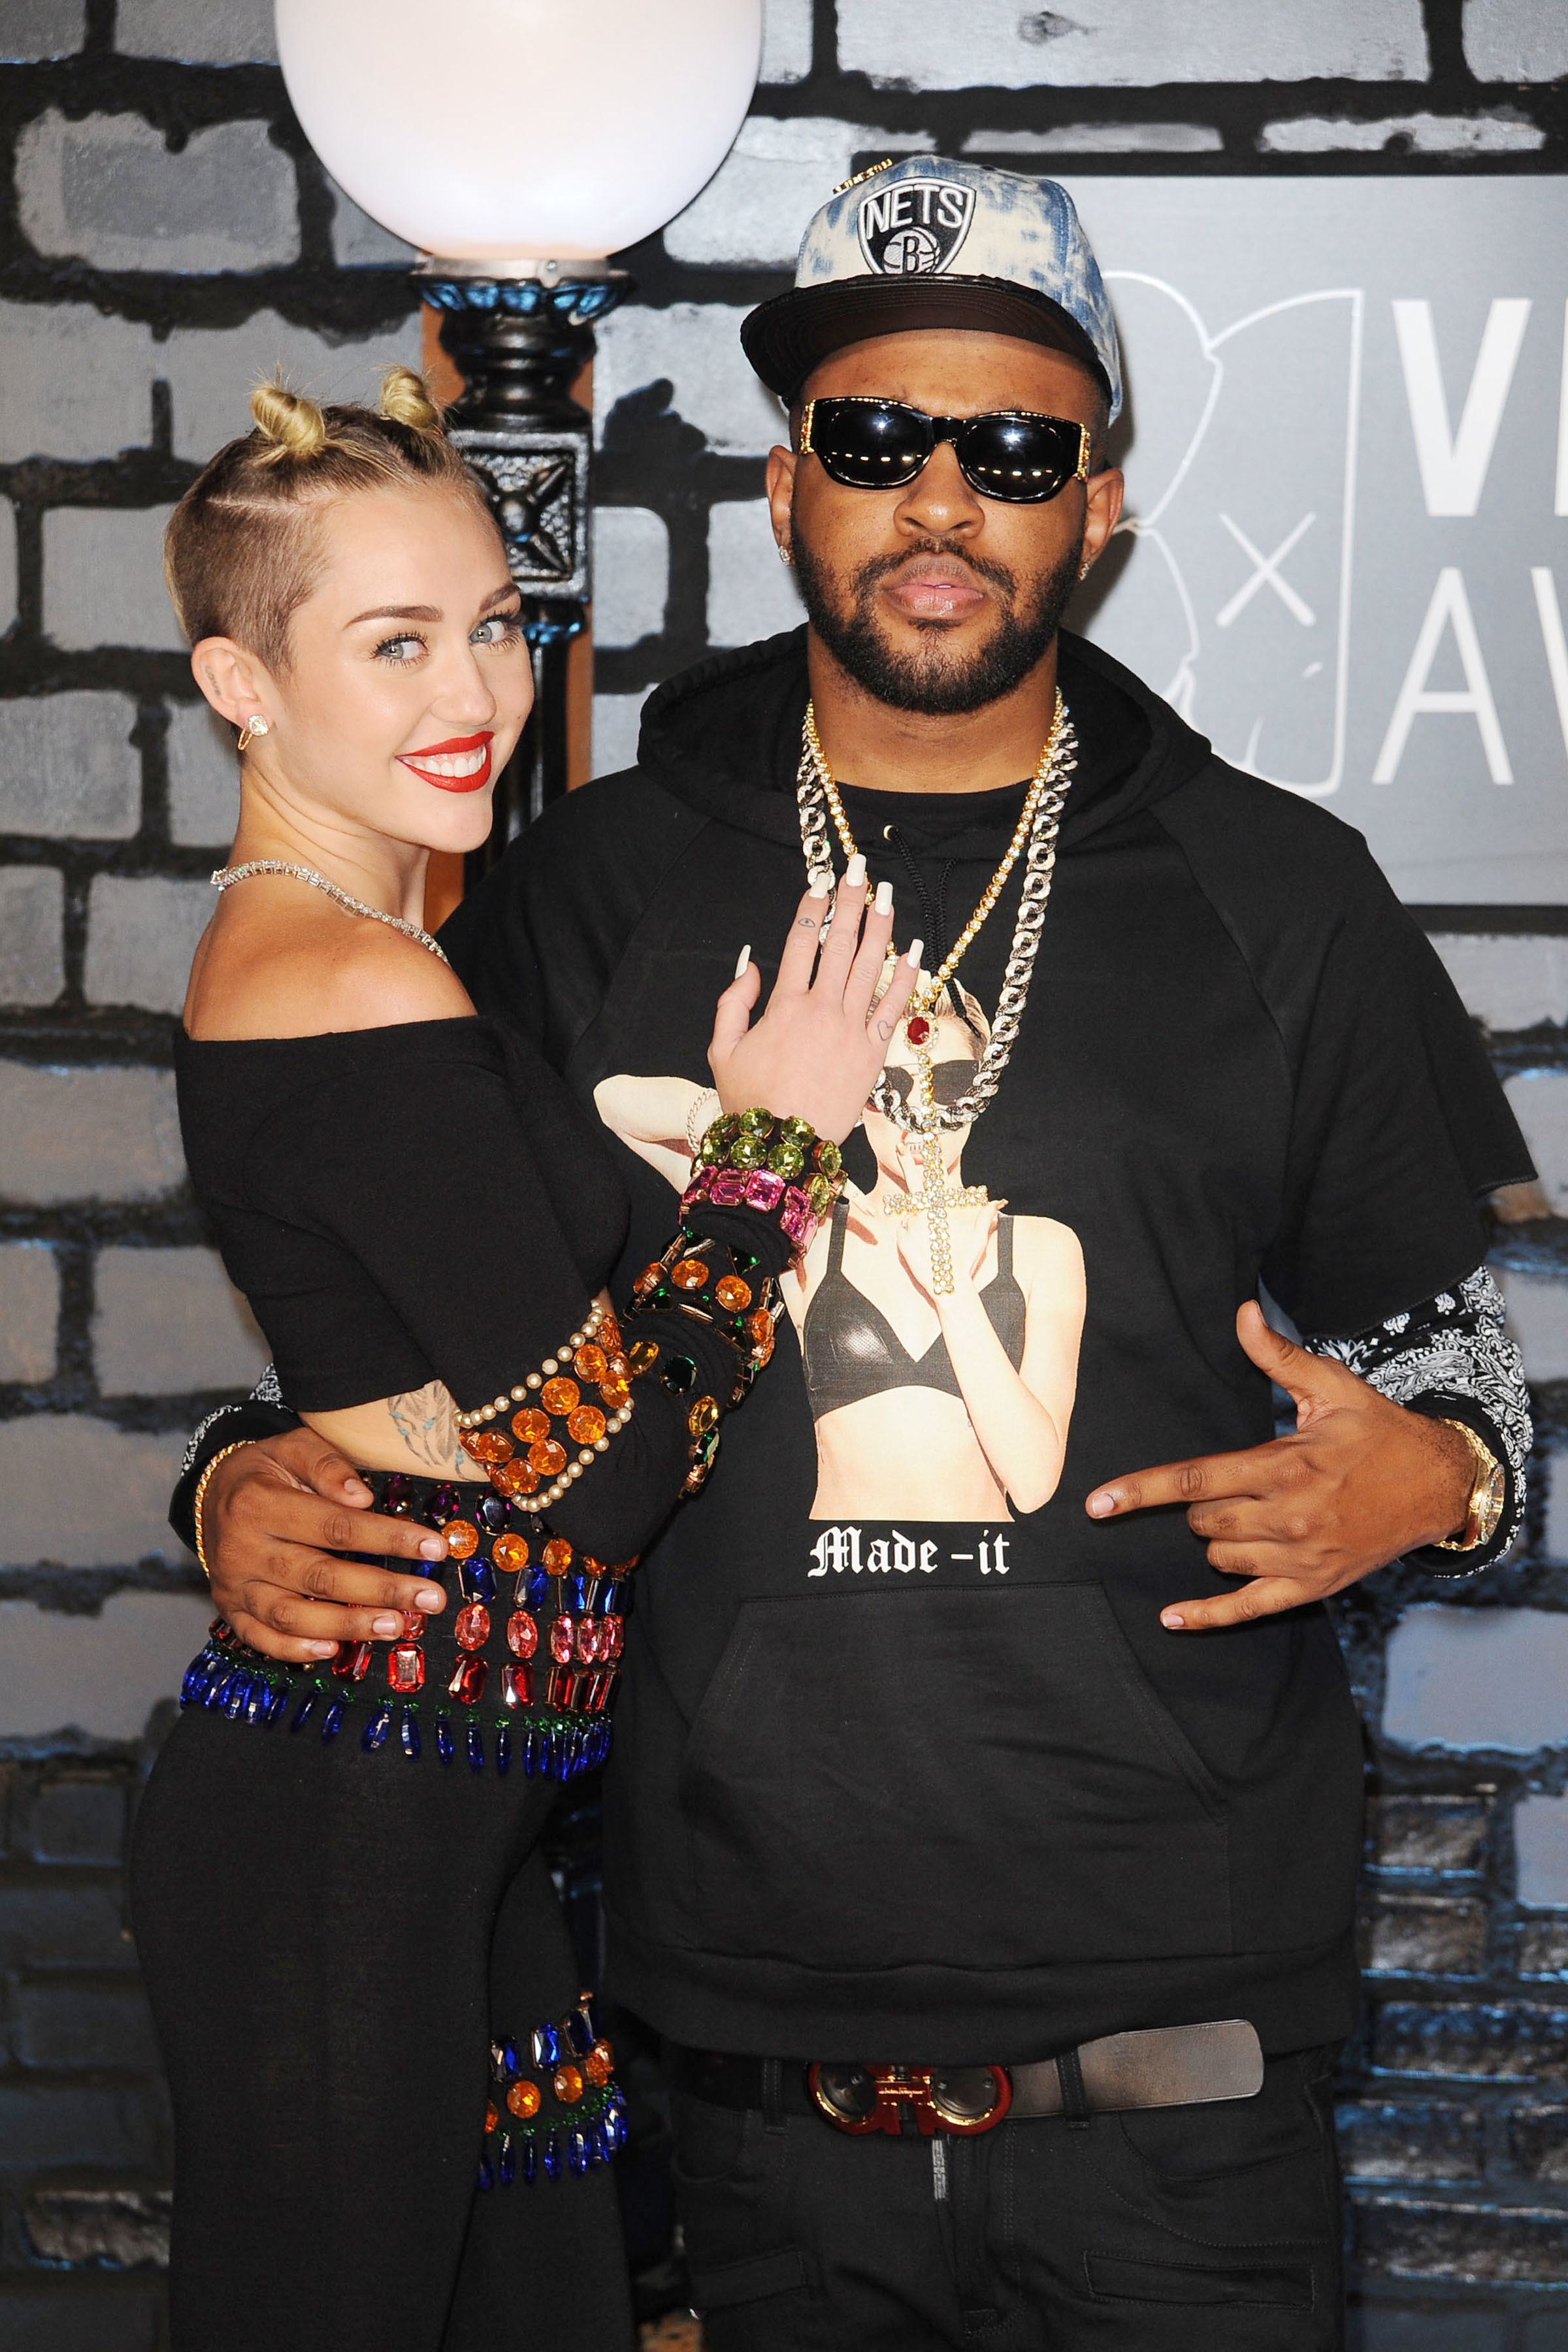 Miley Mike Will Made It